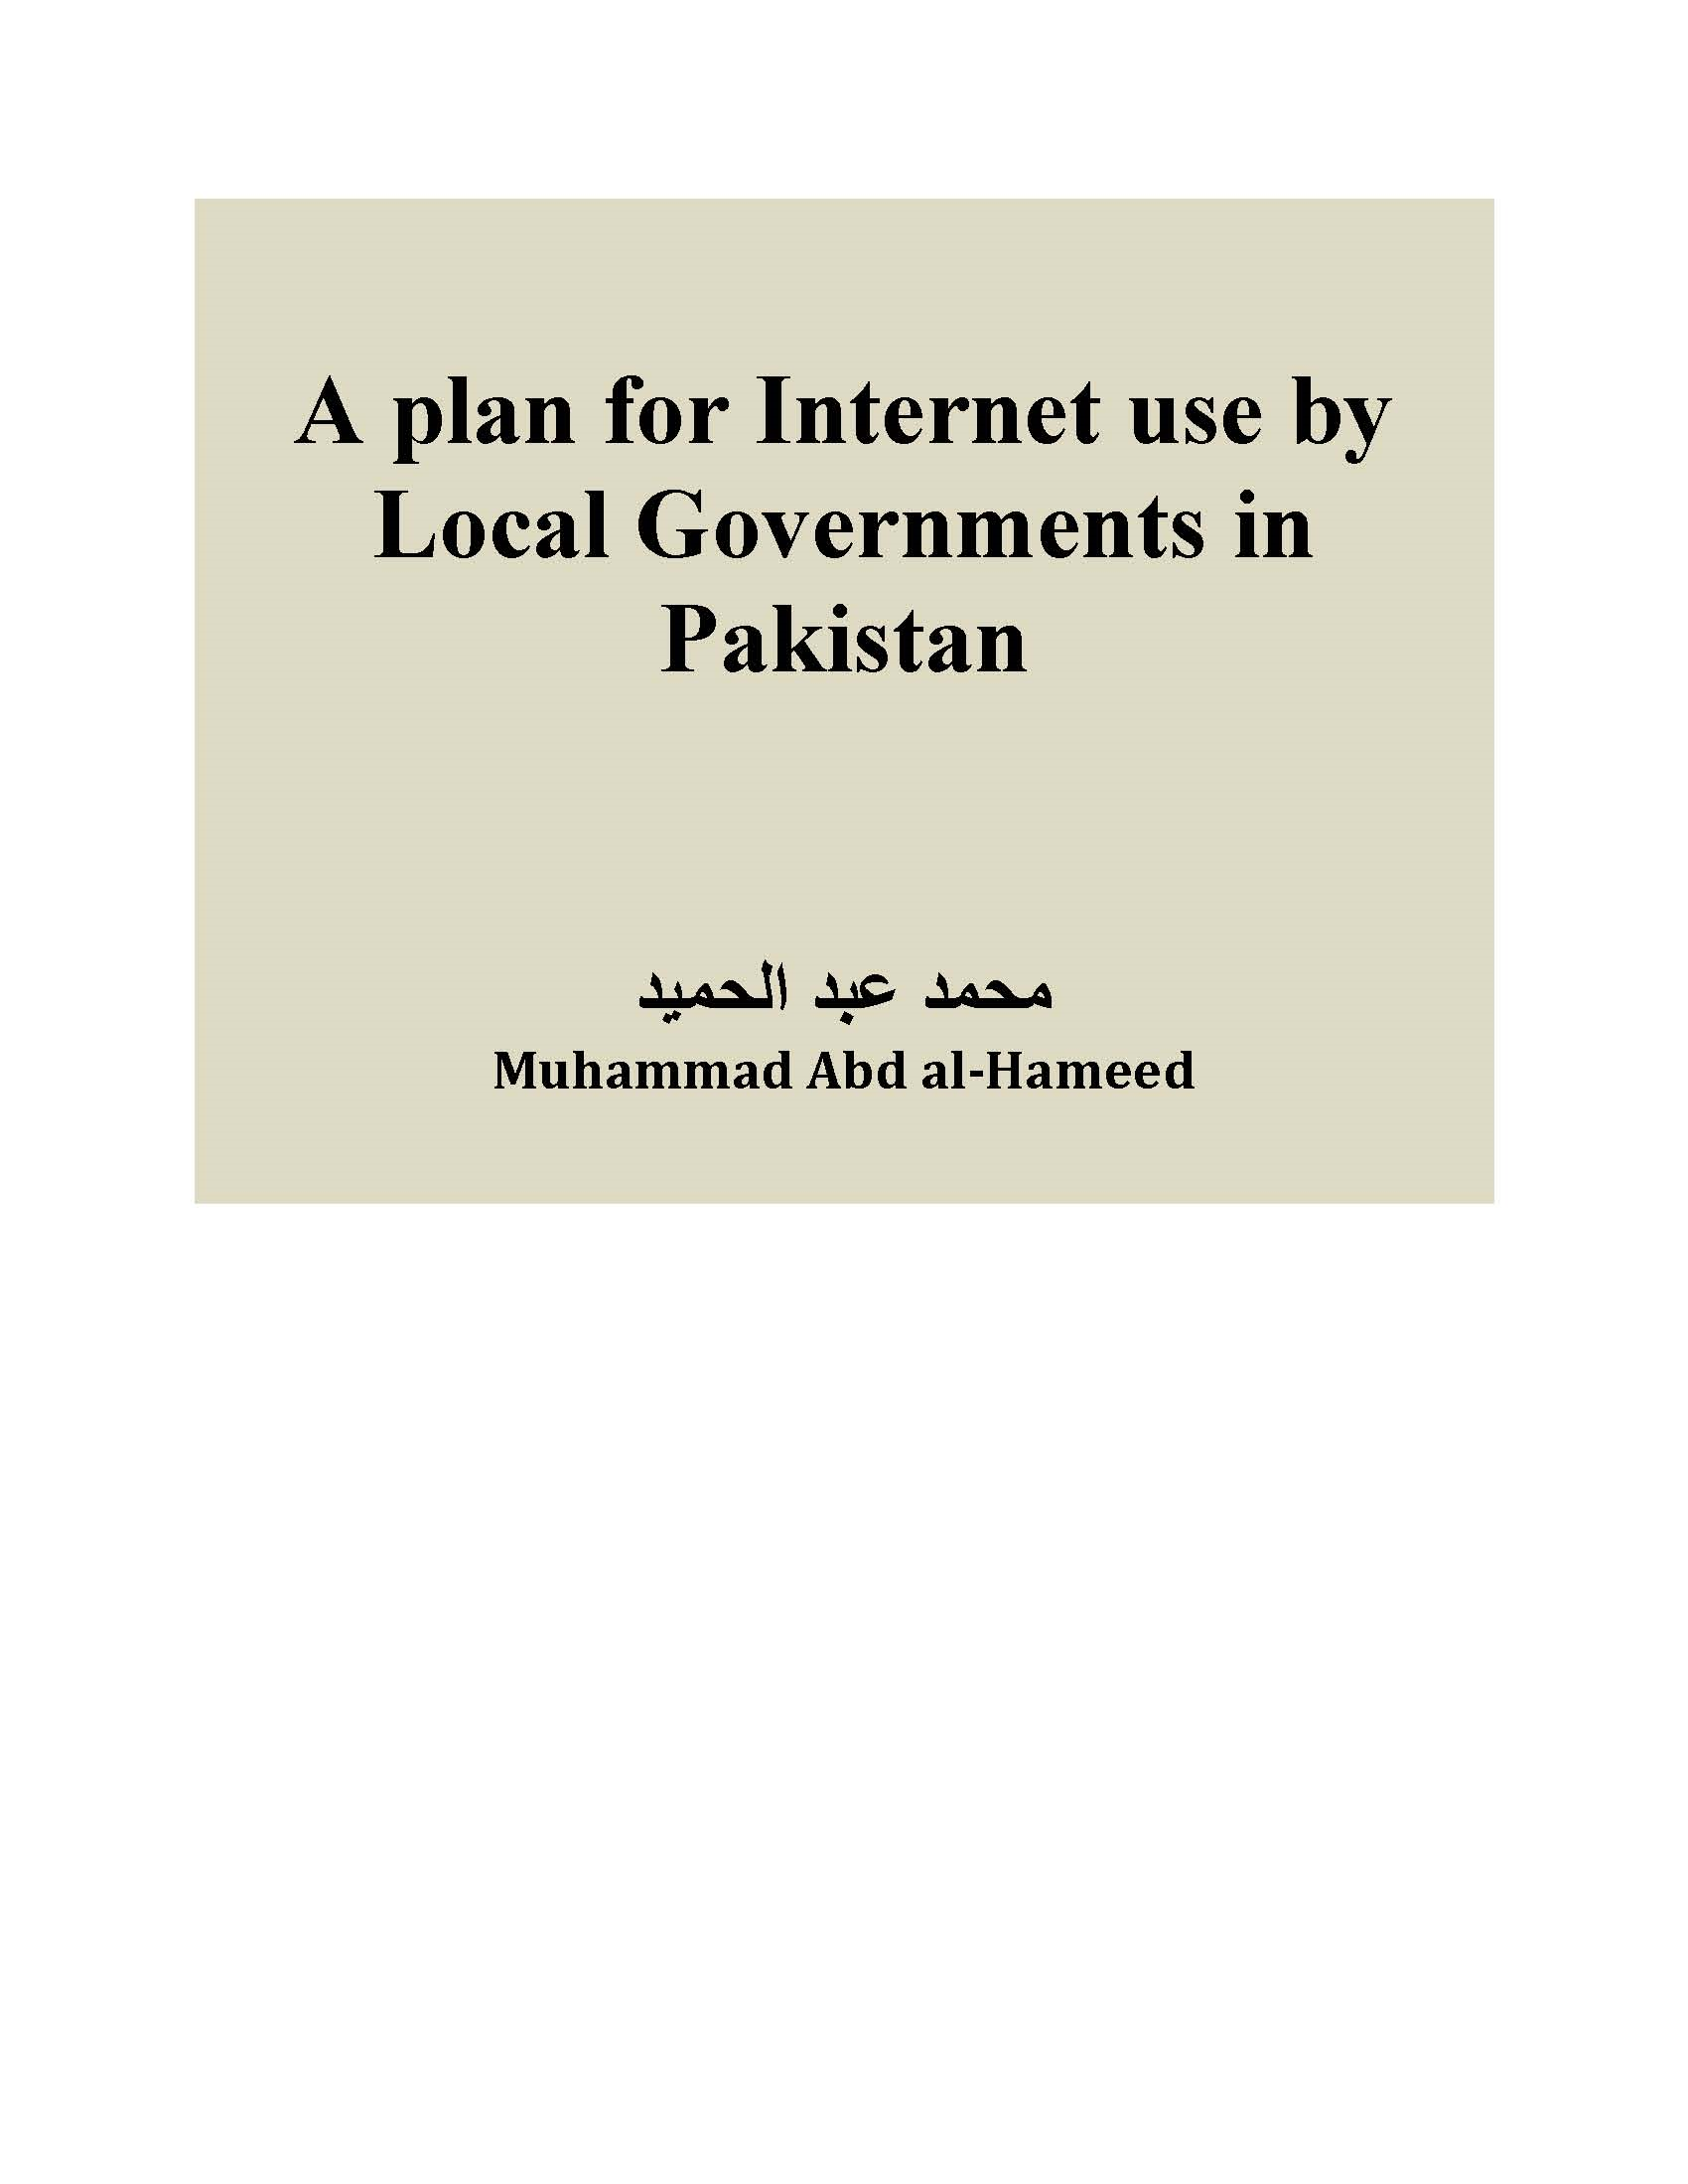 A plan for Internet use by Local Governments in Pakistan